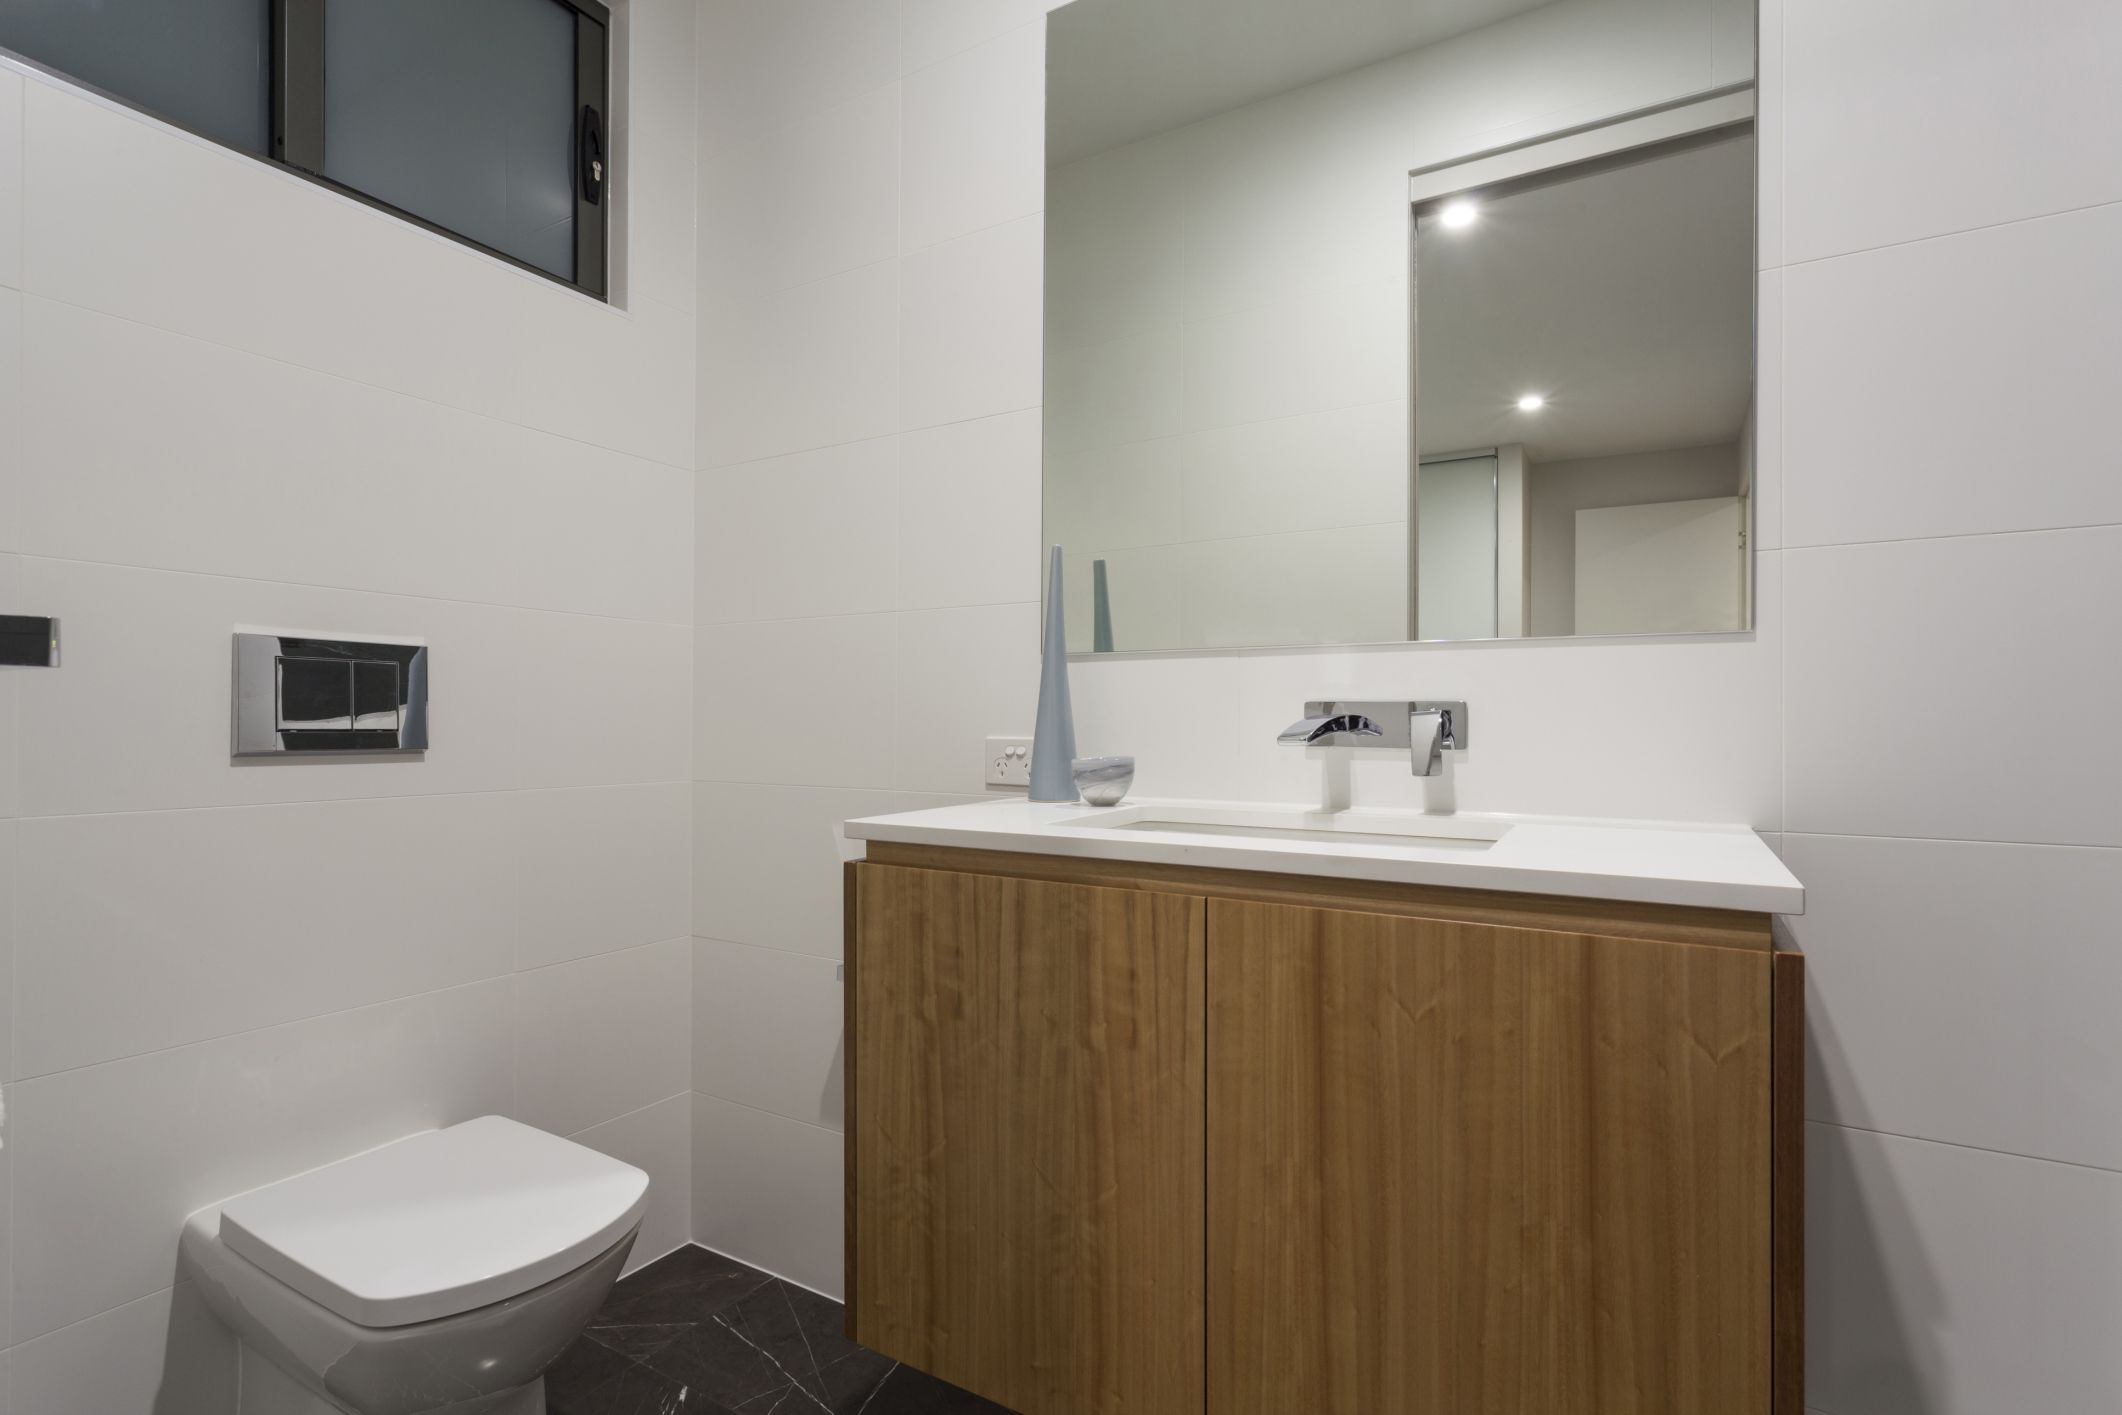 How To Add A Toilet And Shower Garage Hunker